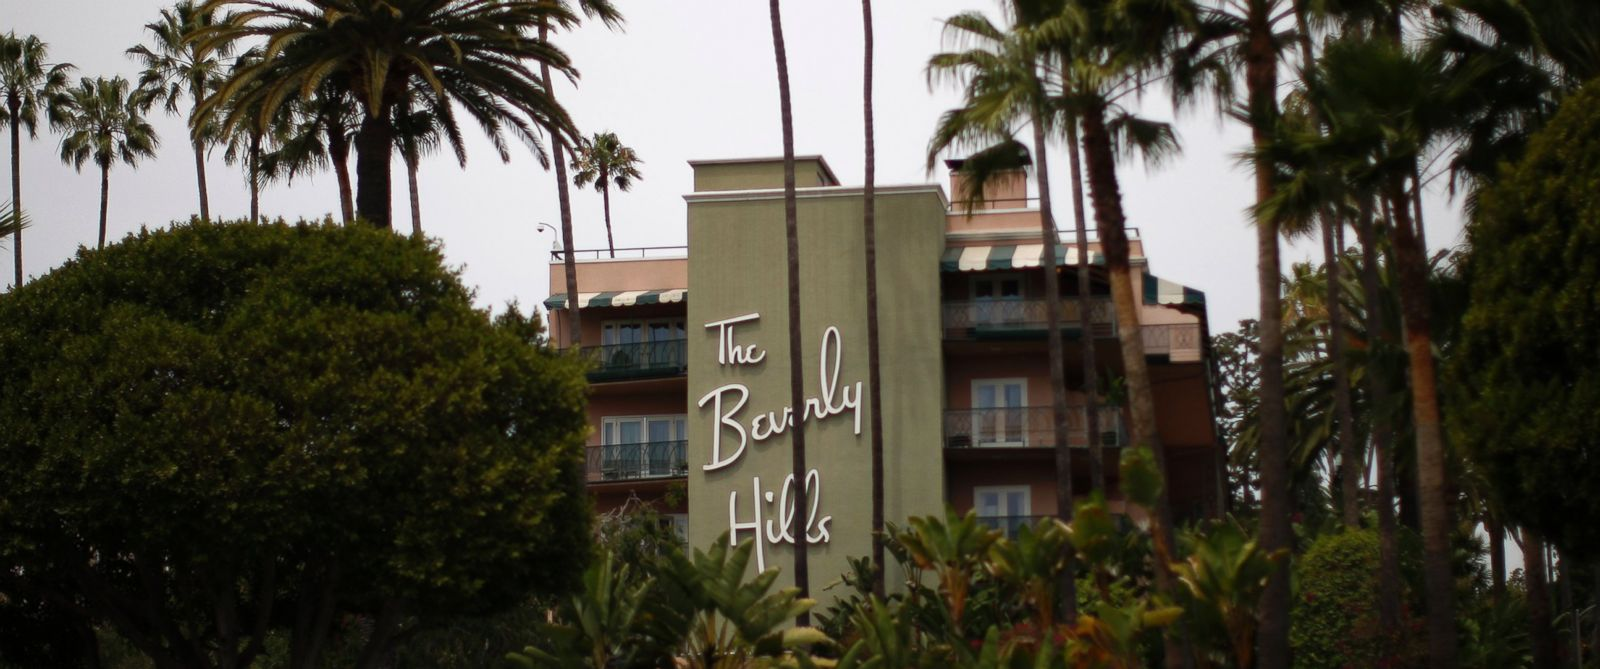 PHOTO: The Beverly Hills Hotel in Beverly Hills, Calif., seen on May 5, 2014, is operated by Dorchester Collection Properties, a group owned by Bruneis government.